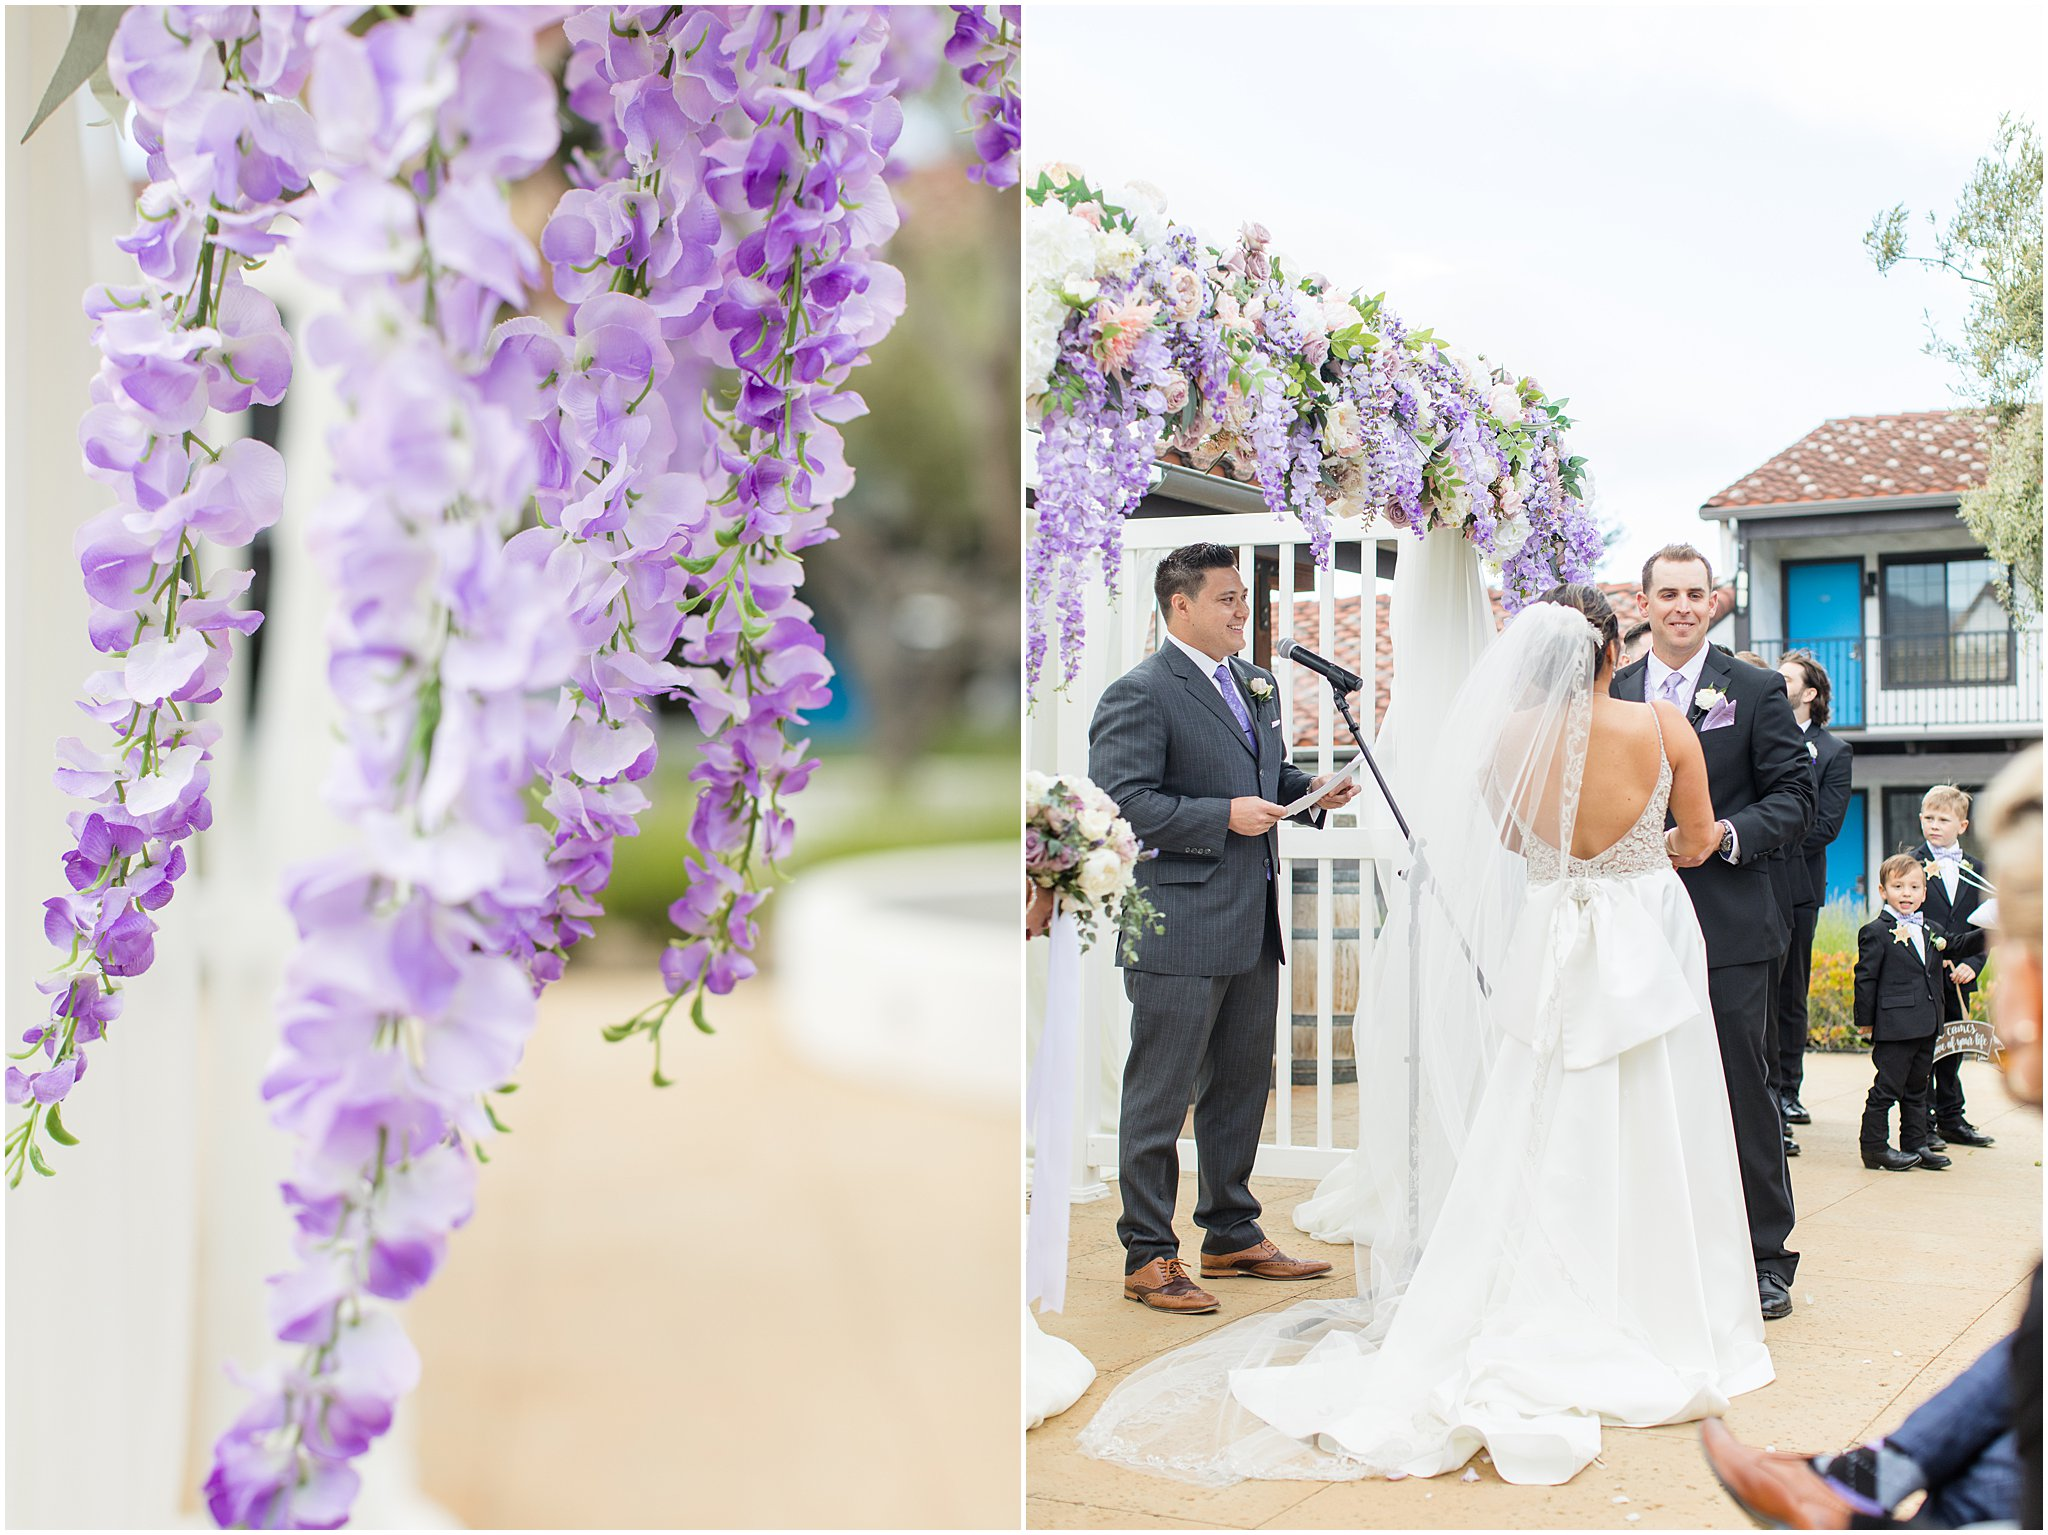 2019 wedding san juan bautista hacienda de leal vineyards bay area wedding photographer_0049.jpg